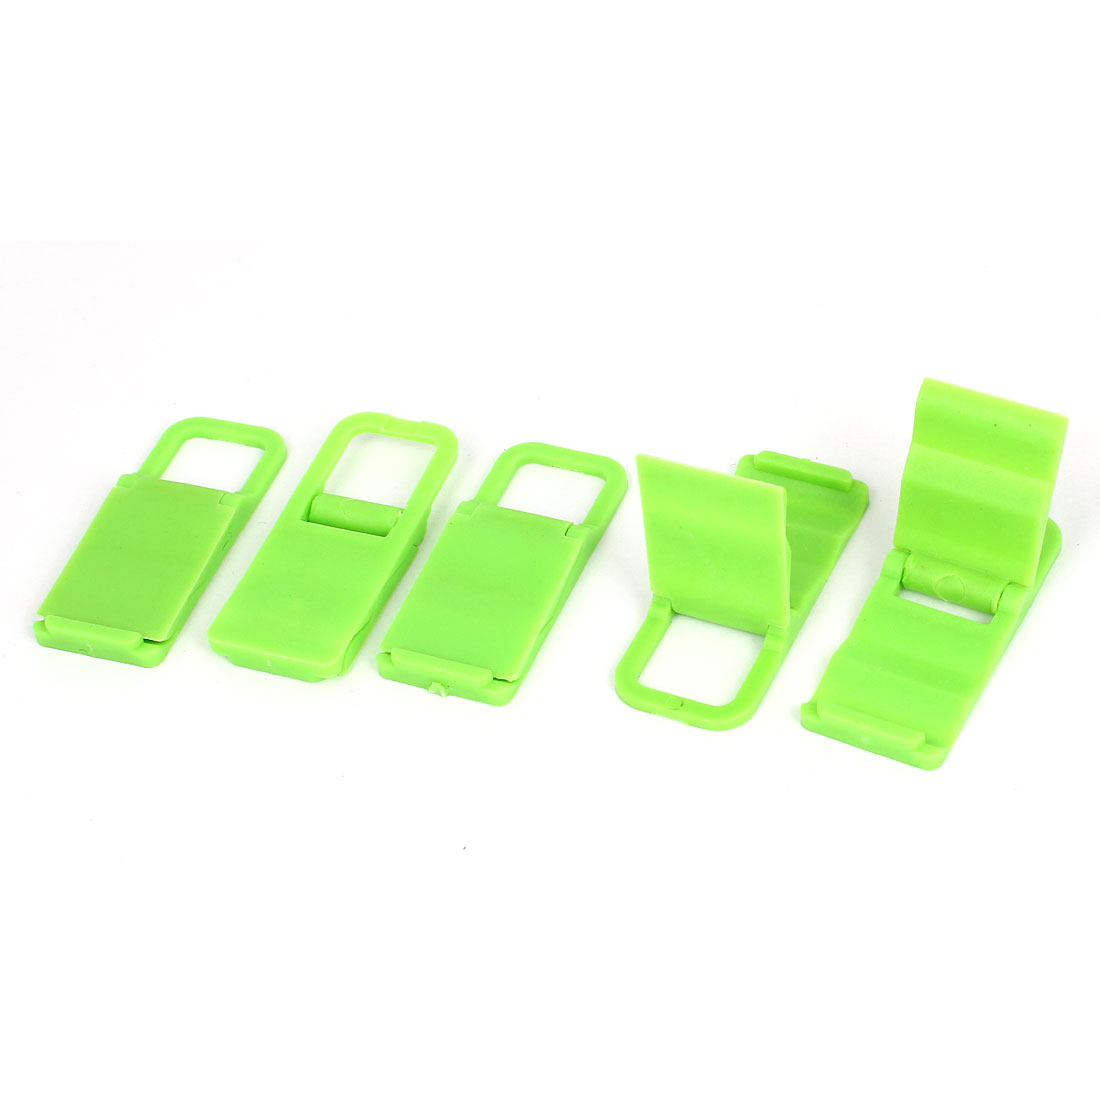 5pcs Desktop Foldable Chair Universal Mobile Phone Holder Stand Bracket Green